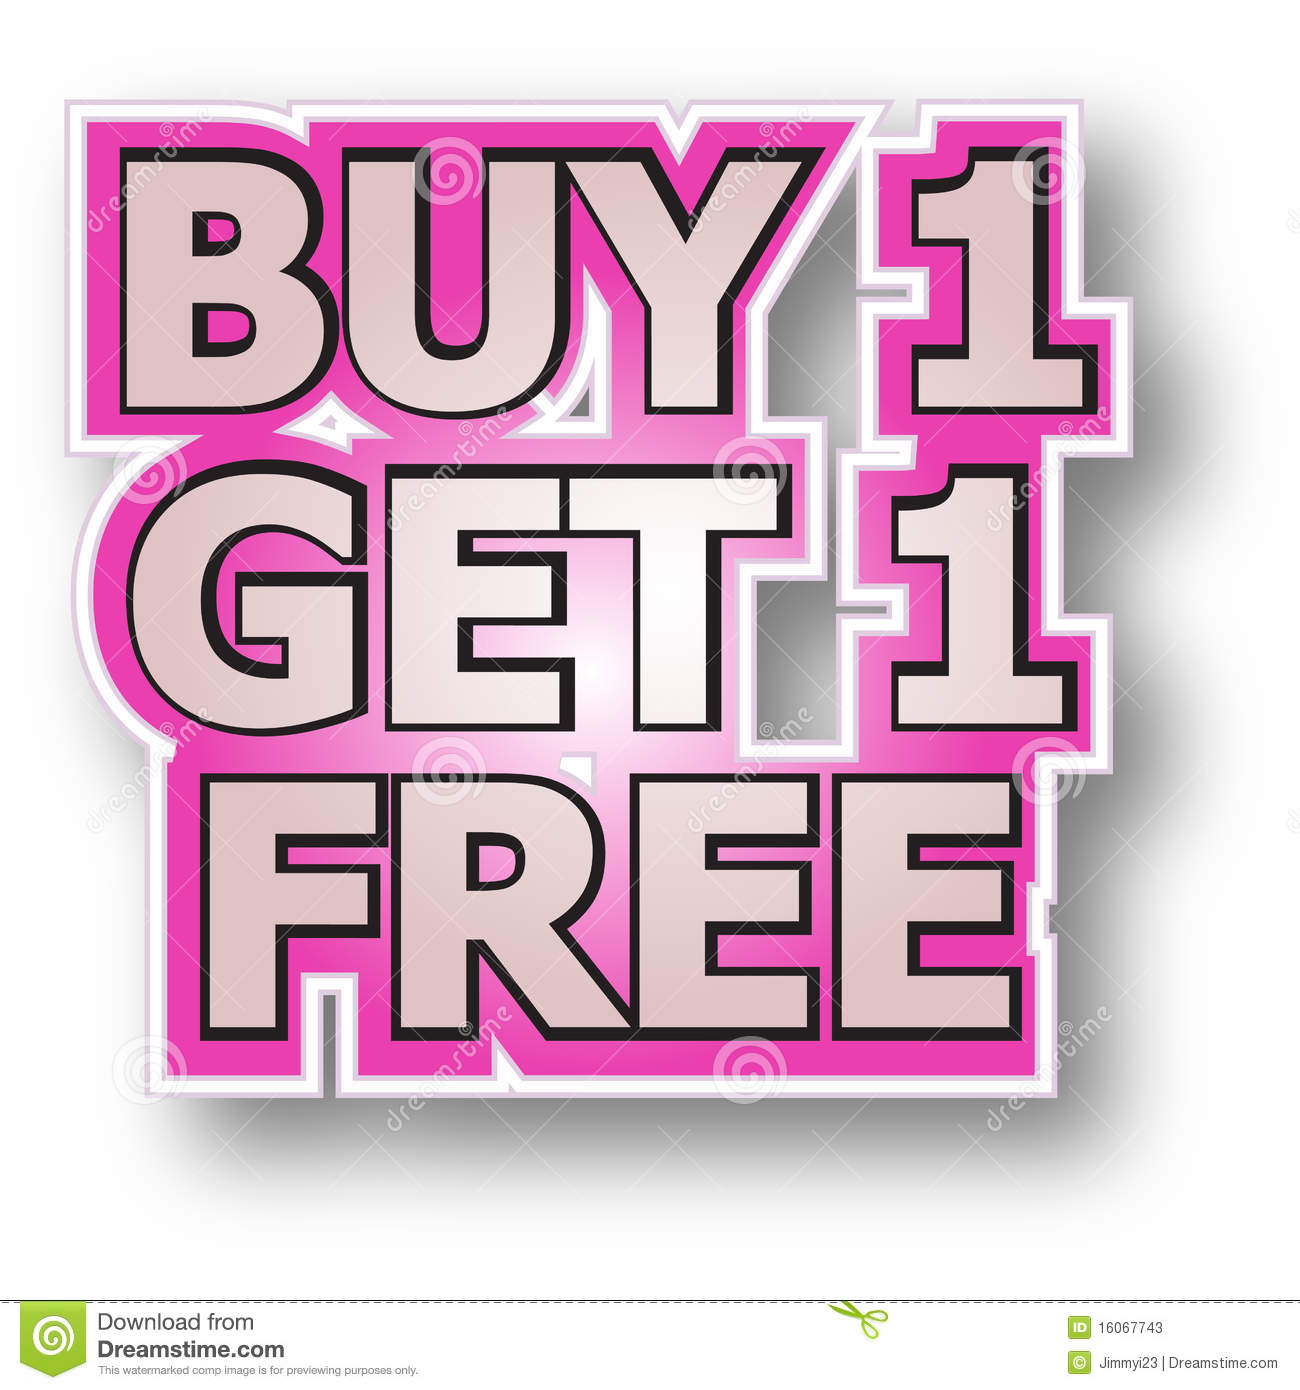 The illustration of buy one get one free on white background.: www.dreamstime.com/stock-photos-buy-1-get-1-free-image16067743